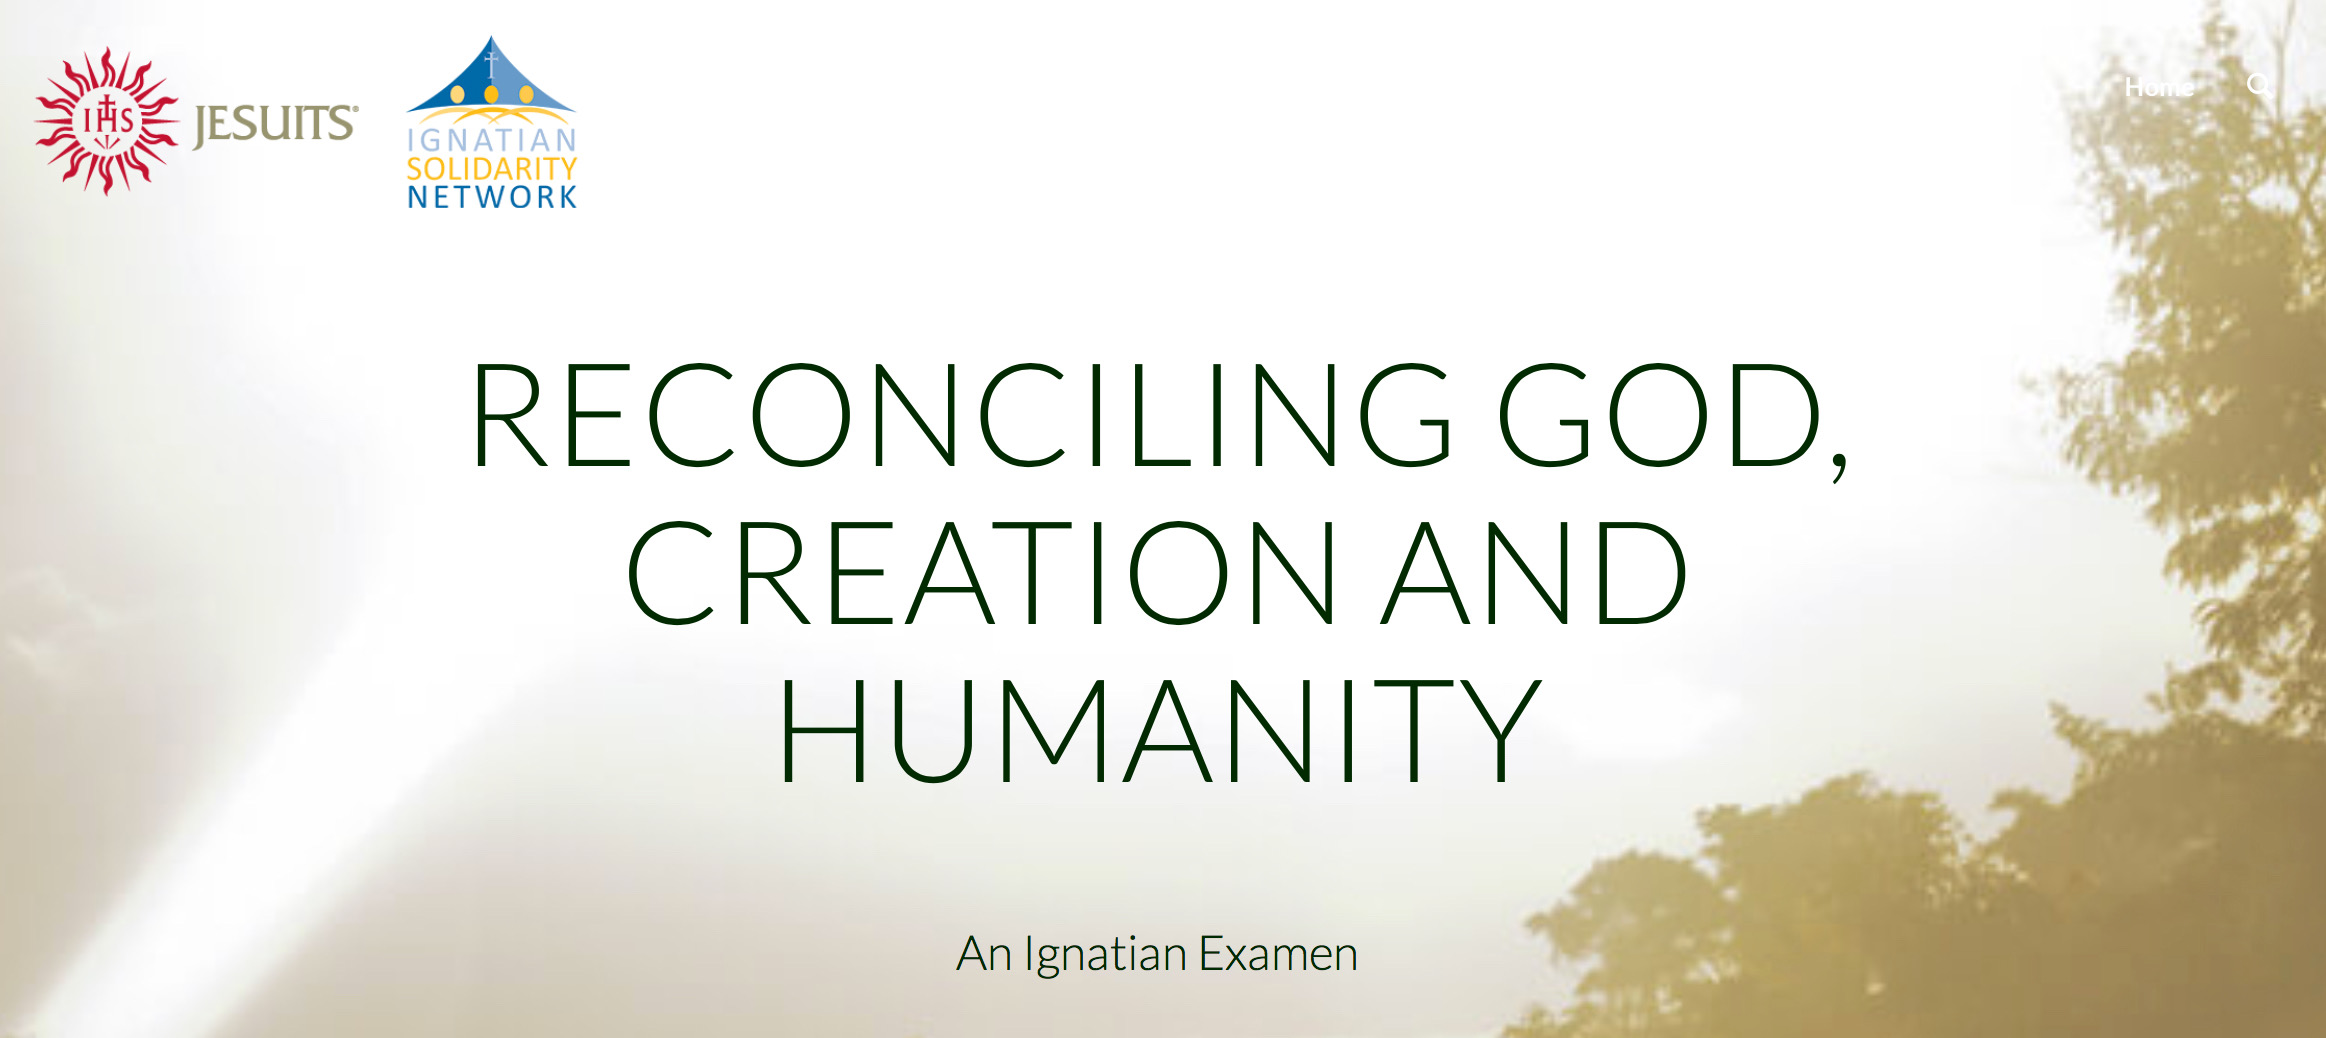 Reconciling God, Creation, and Humanity: An Ecological Examen